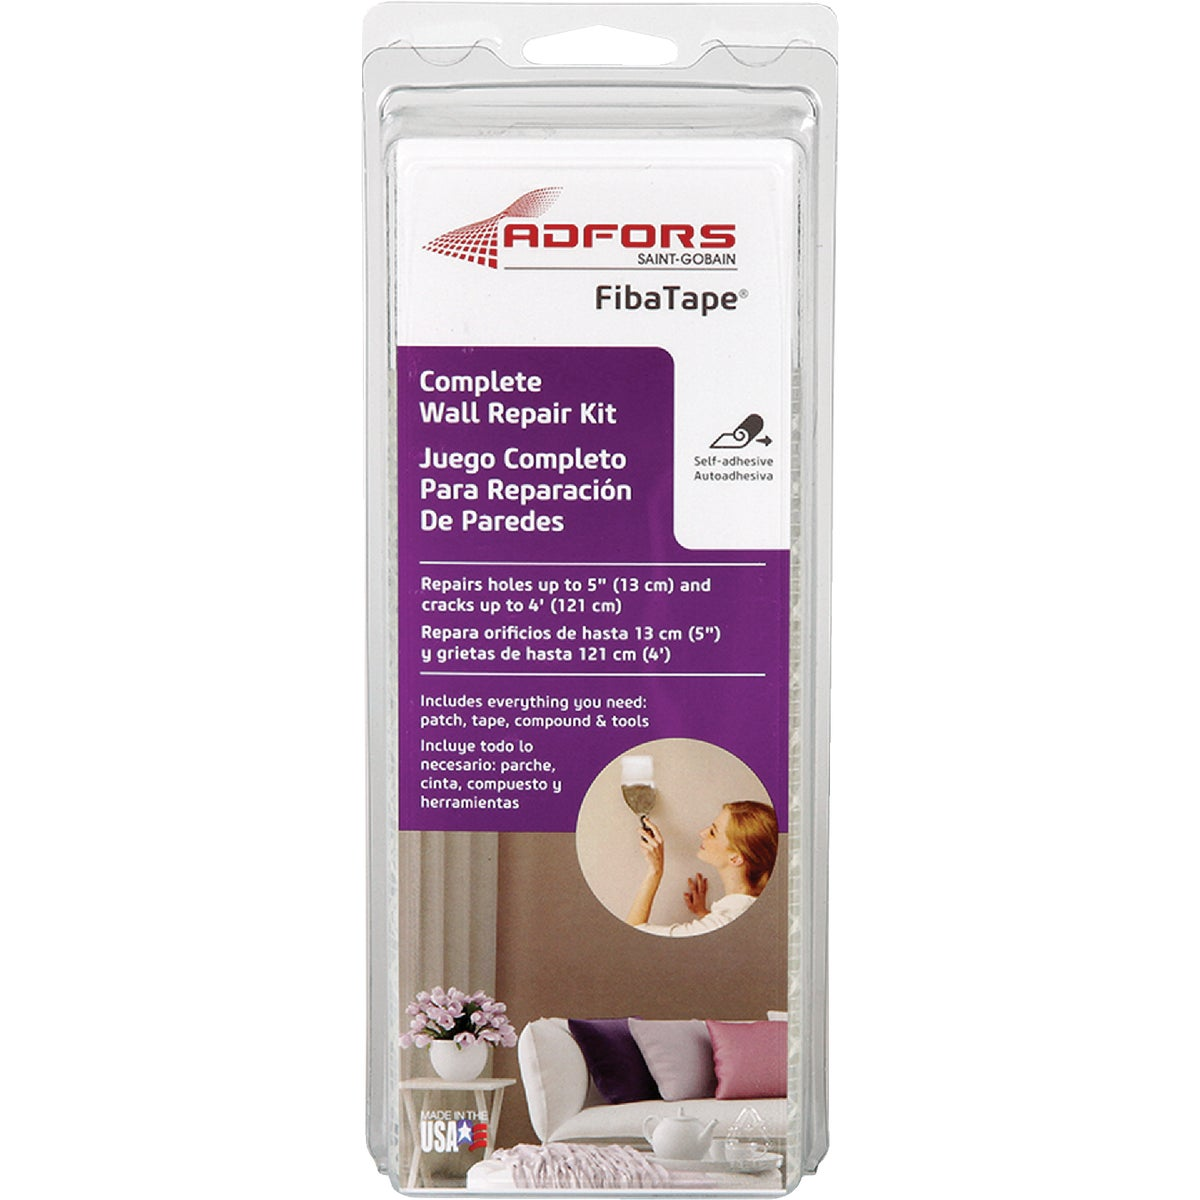 COMPLETE WALL REPAIR KIT - FDW6866-U by Saint Gobain